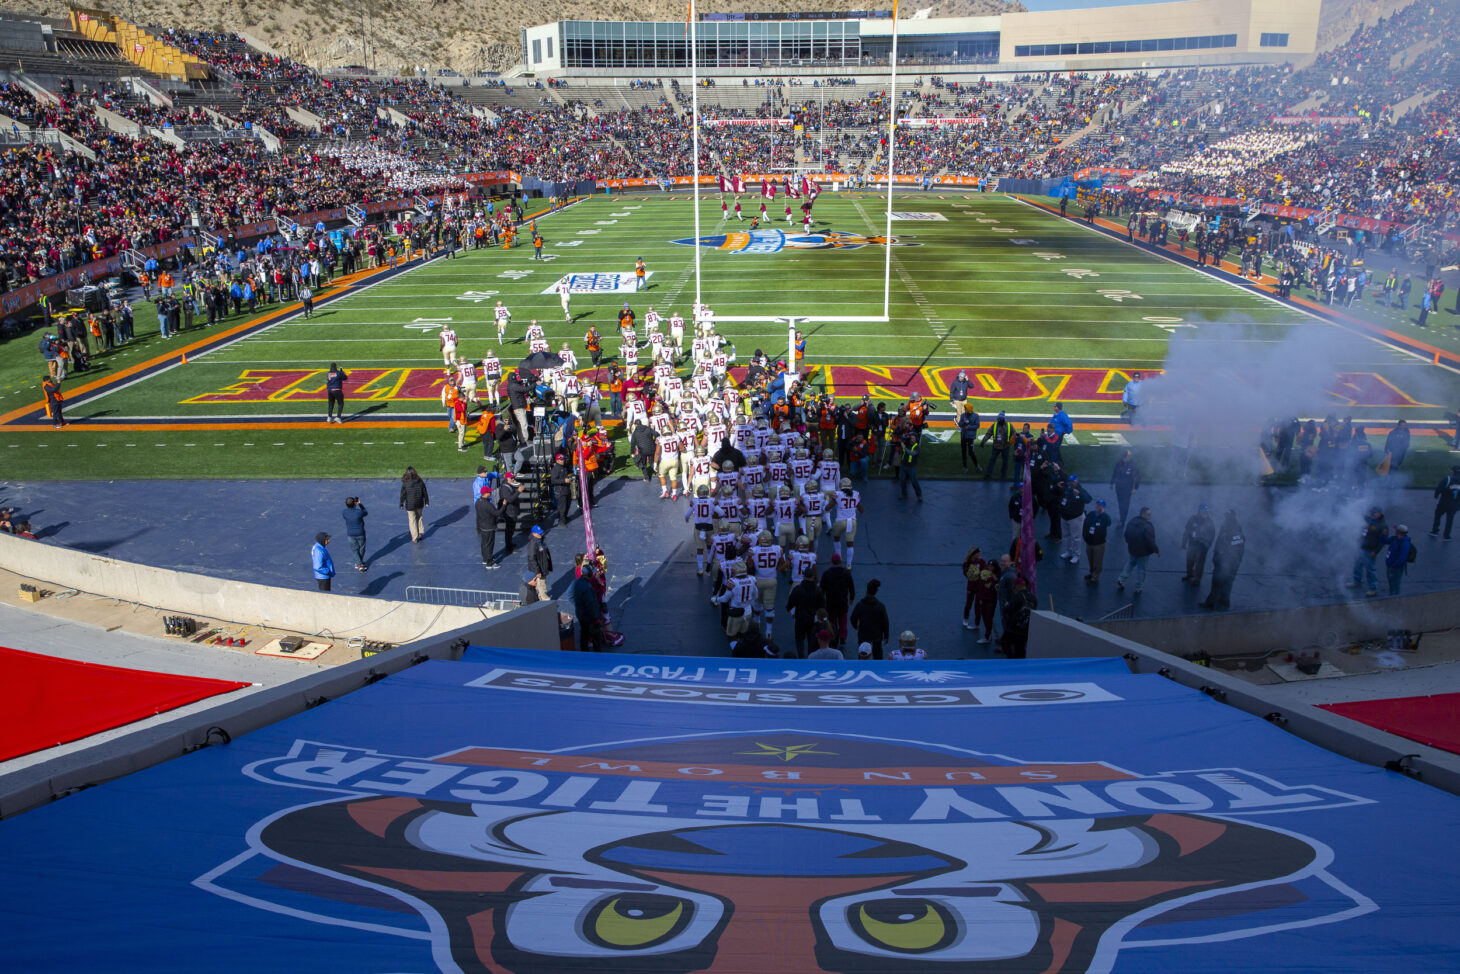 The Tony the Tiger Sun Bowl is the second oldest bowl game in the business with the first Sun Bowl game being played at El Paso High School's Jones Stadium, with the El Paso All-Stars defeating Ranger 25-21. 2003 Legend of the Sun Bowl Ken Heineman accounted for every El Paso All-Star point. Photo by Ivan Pierre Aguirre/Sun Bowl Association